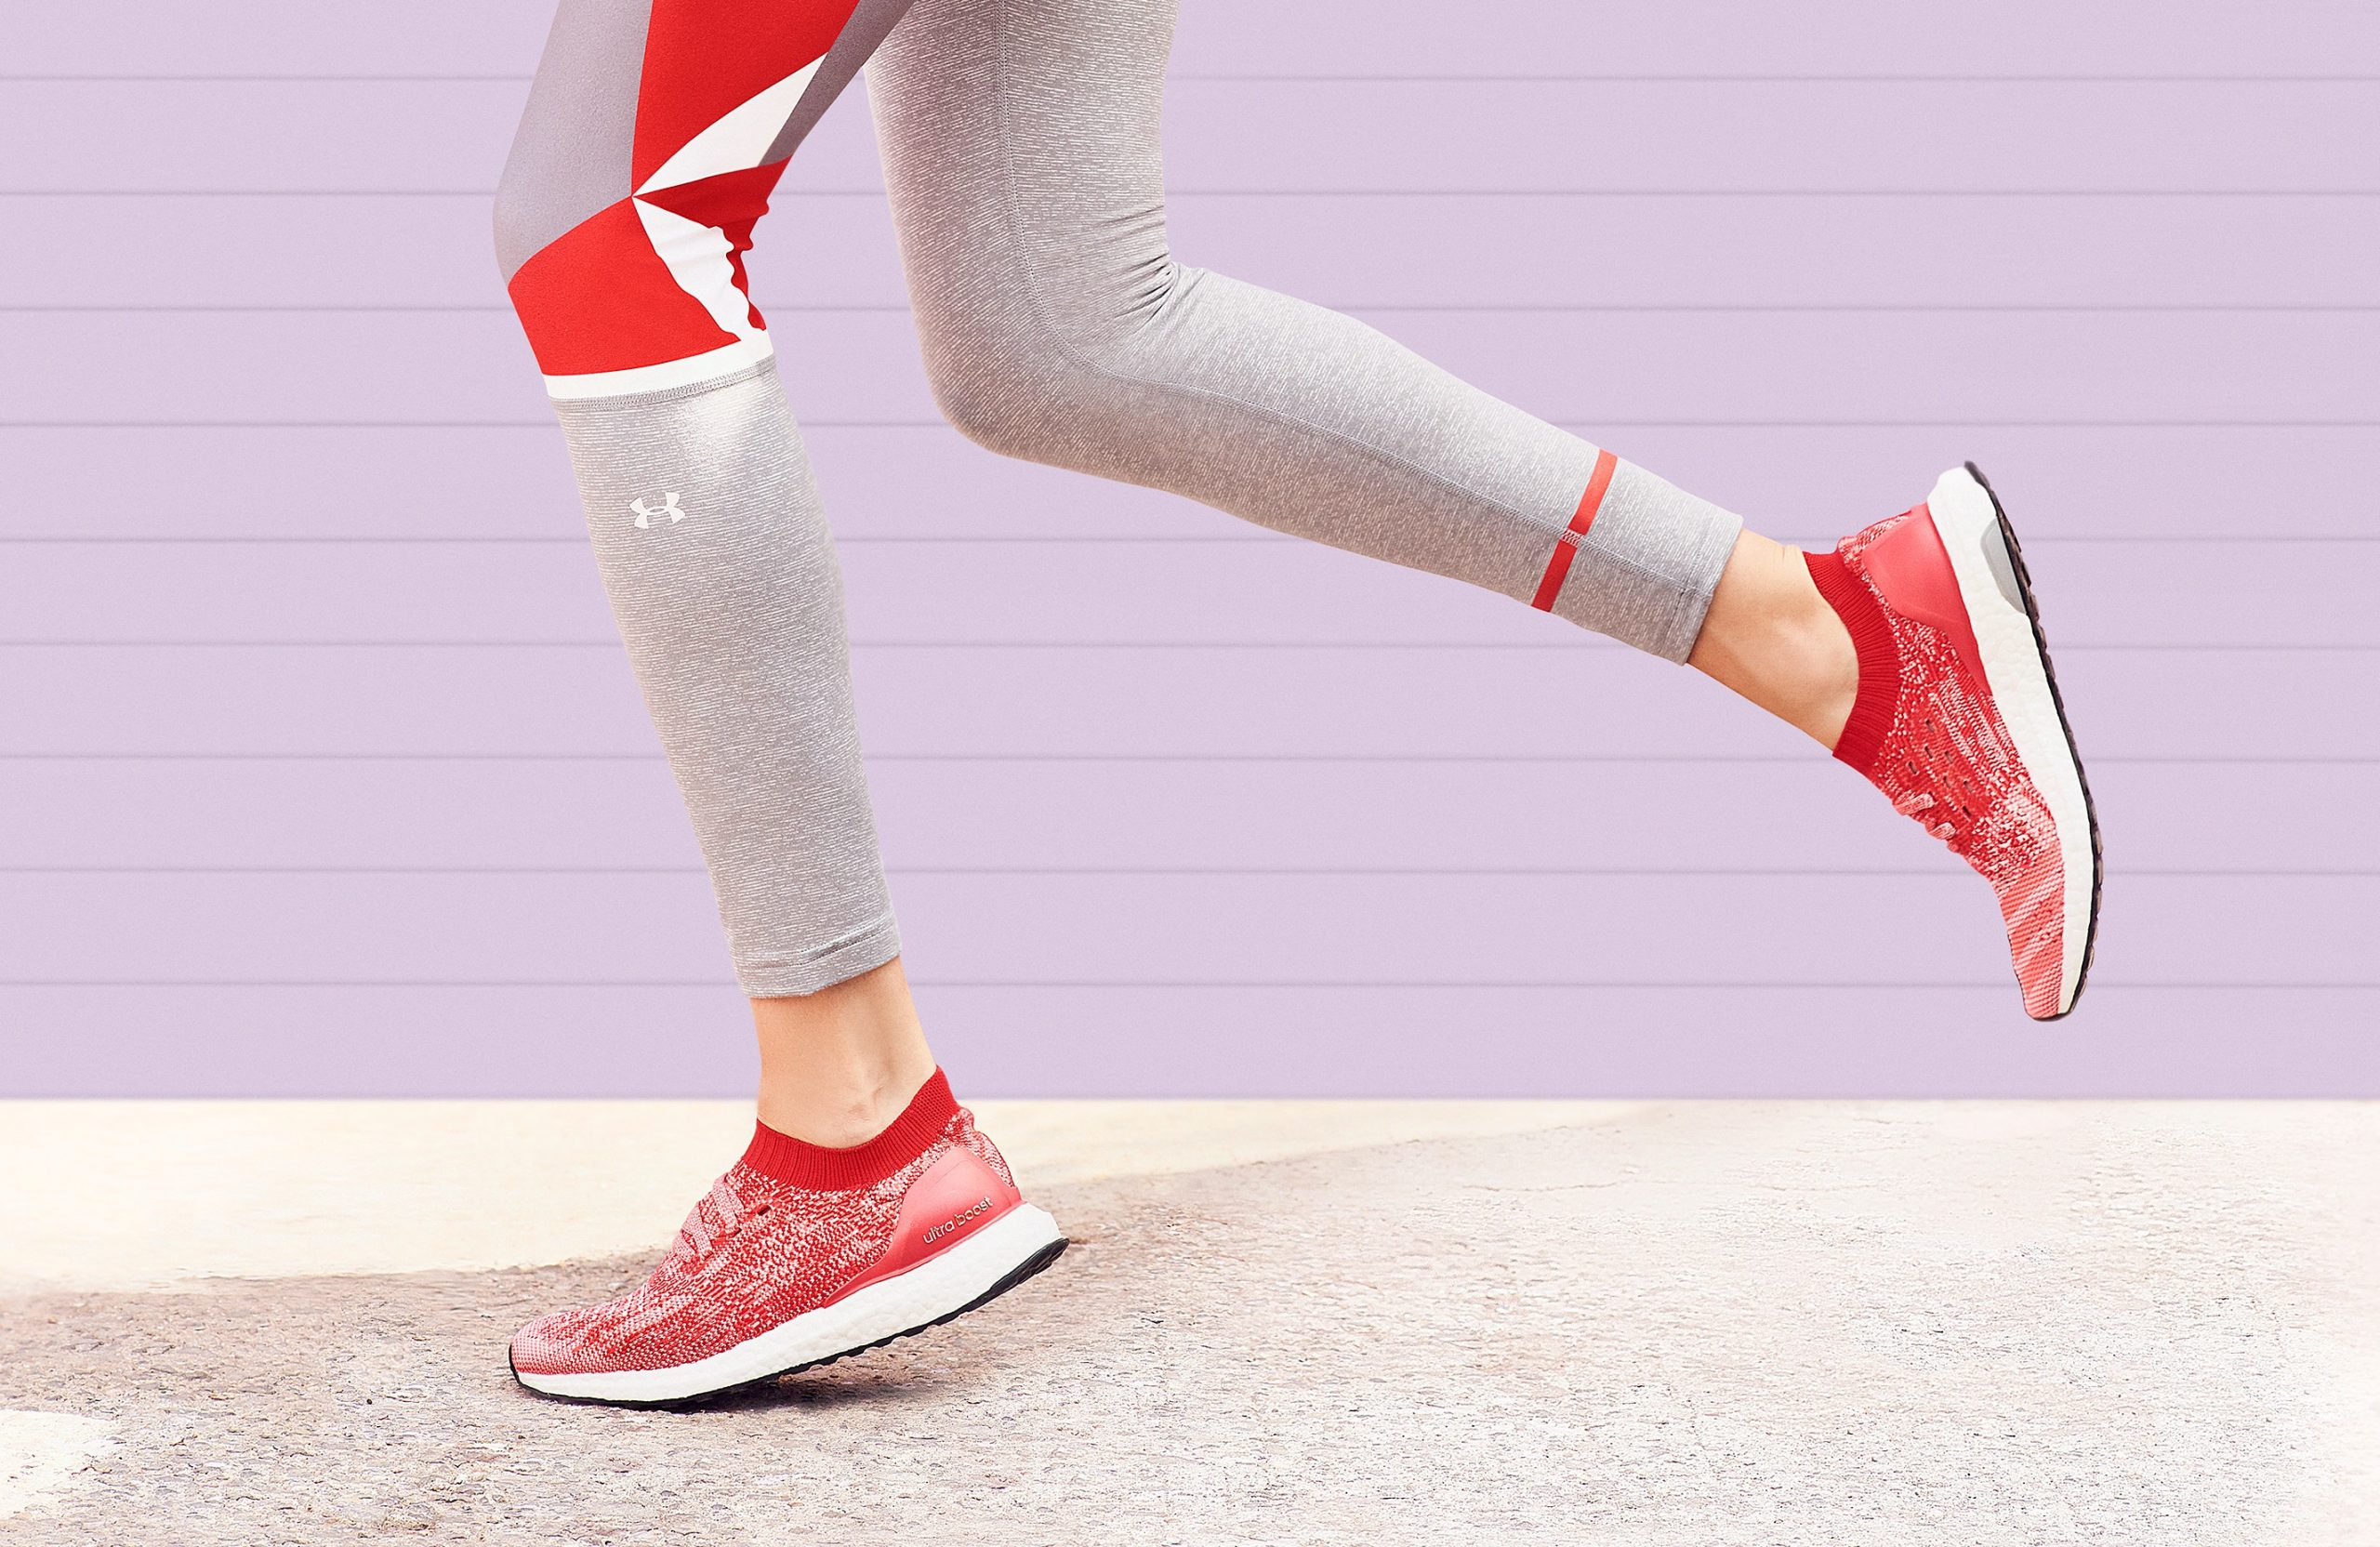 What Do You Need to Remember When Purchasing a Jogging Shoe?